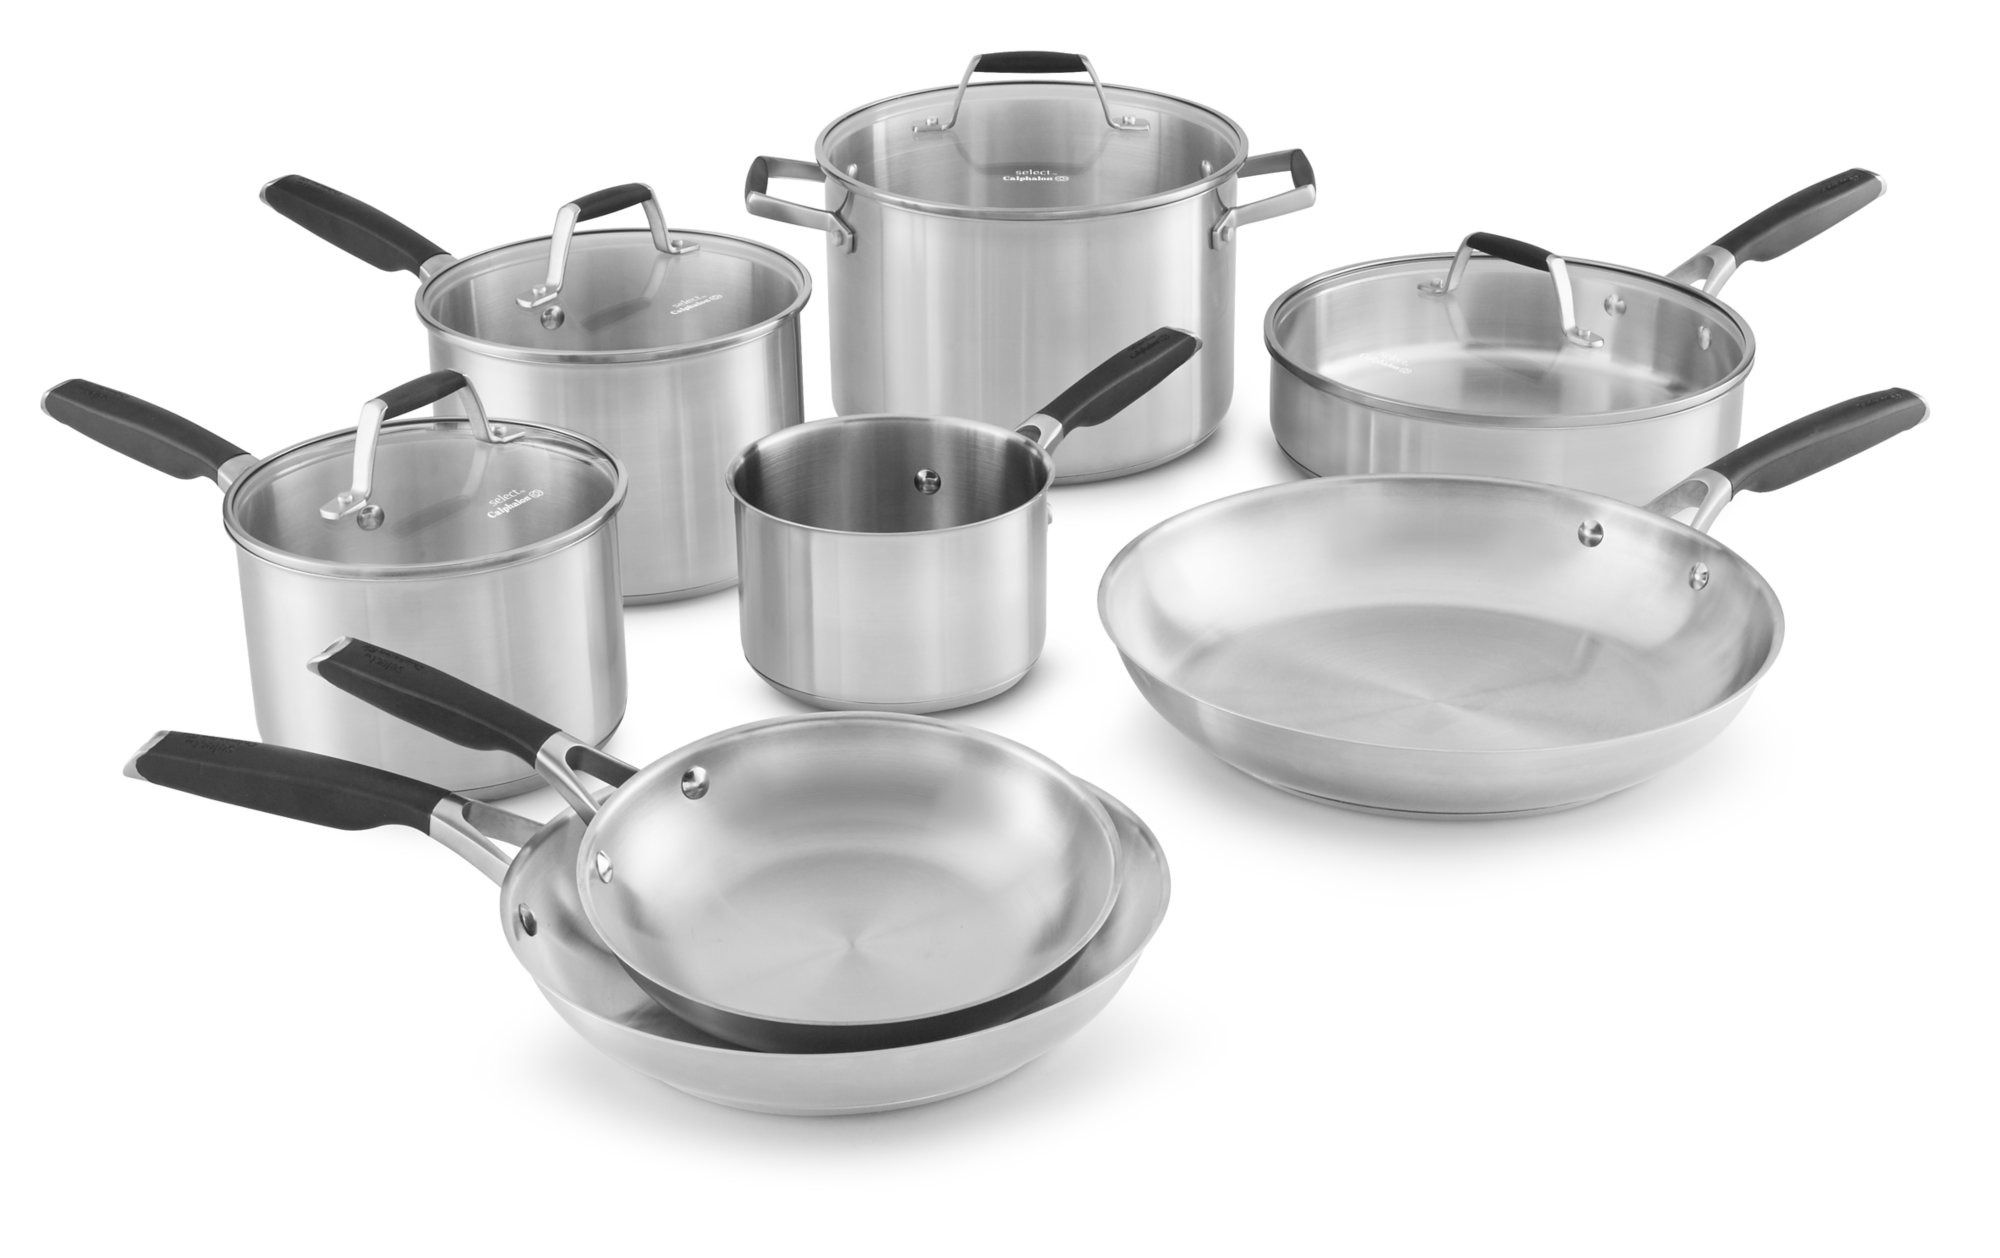 Select by Calphalon Stainless Steel 12-piece Cookware Set